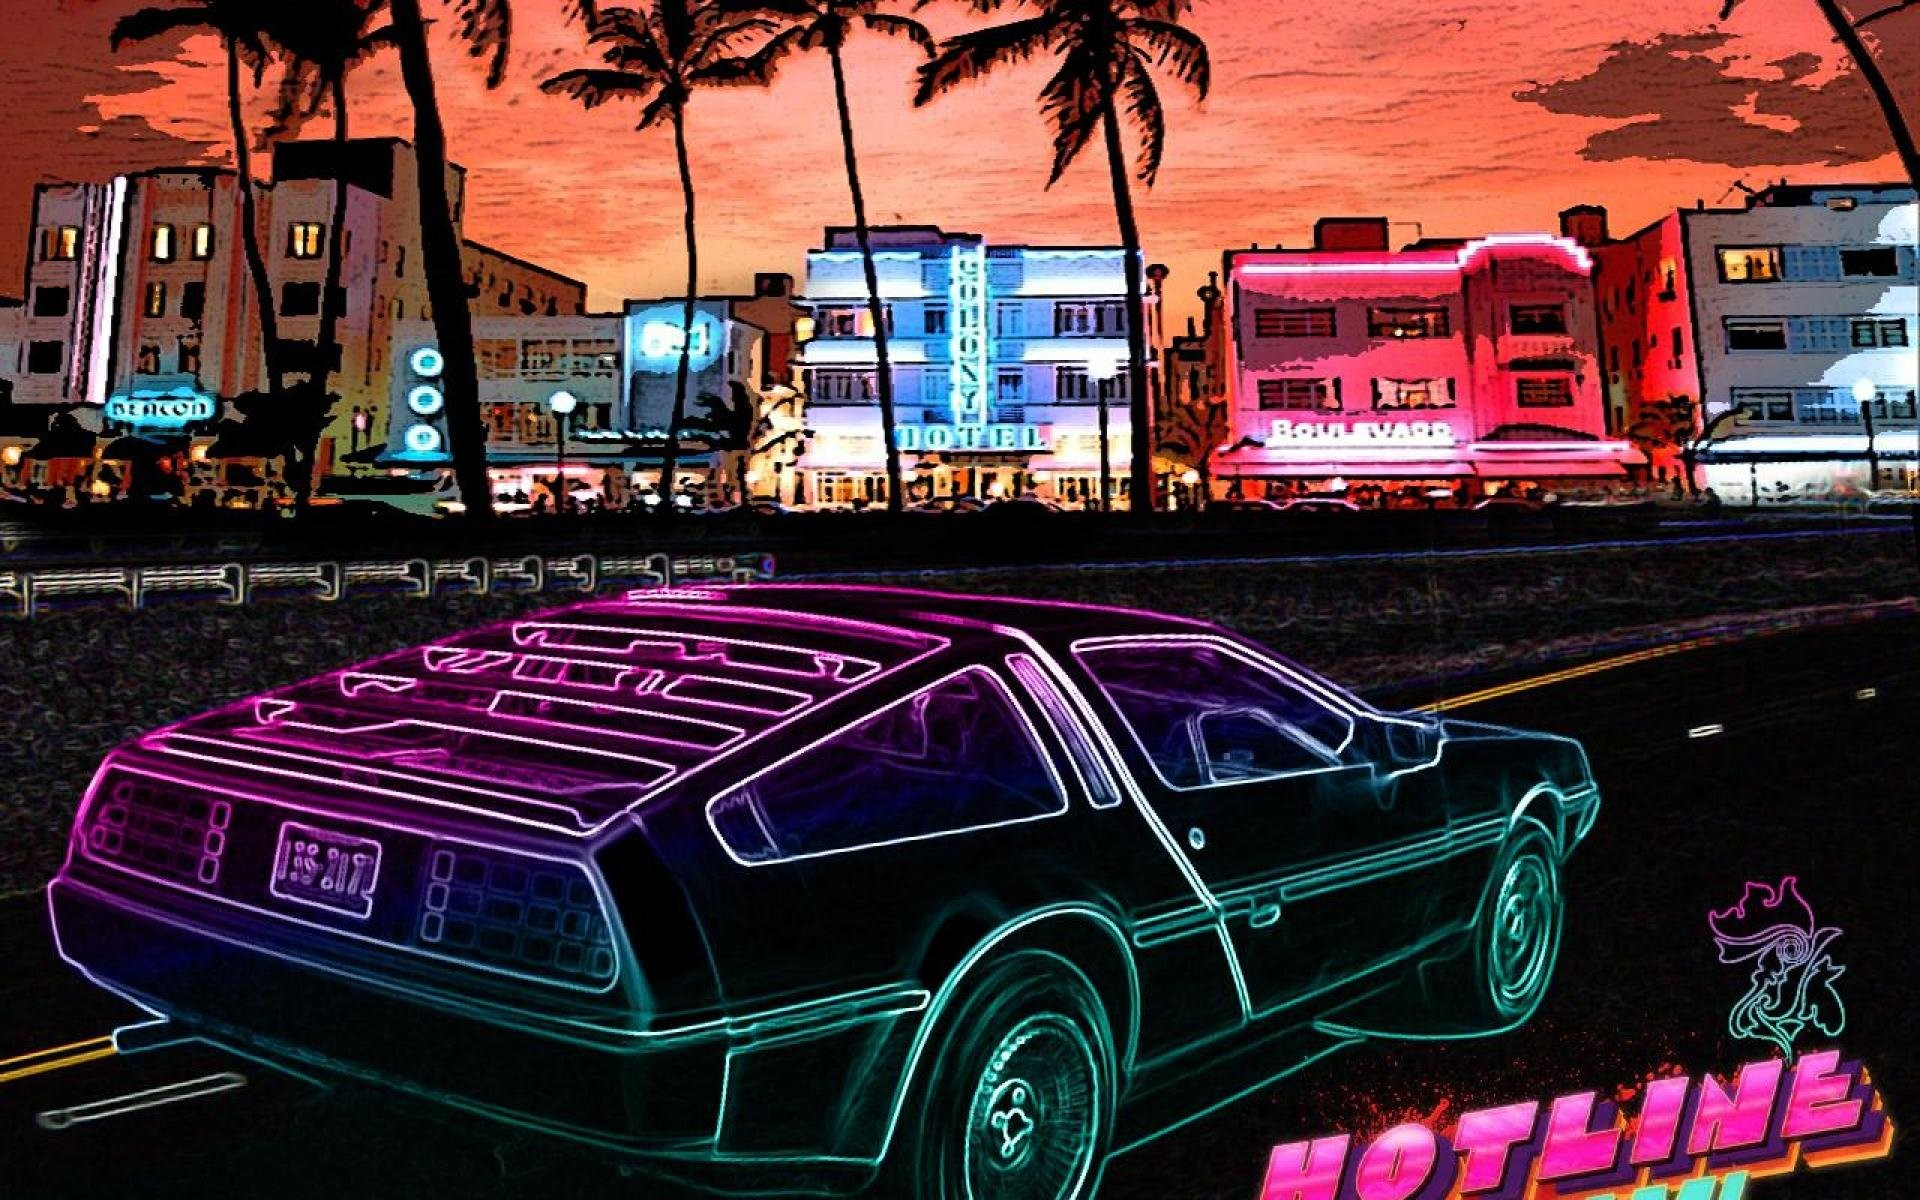 HOTLINE-MIAMI action shooter fighting hotline miami payday wallpaper      547949   WallpaperUP